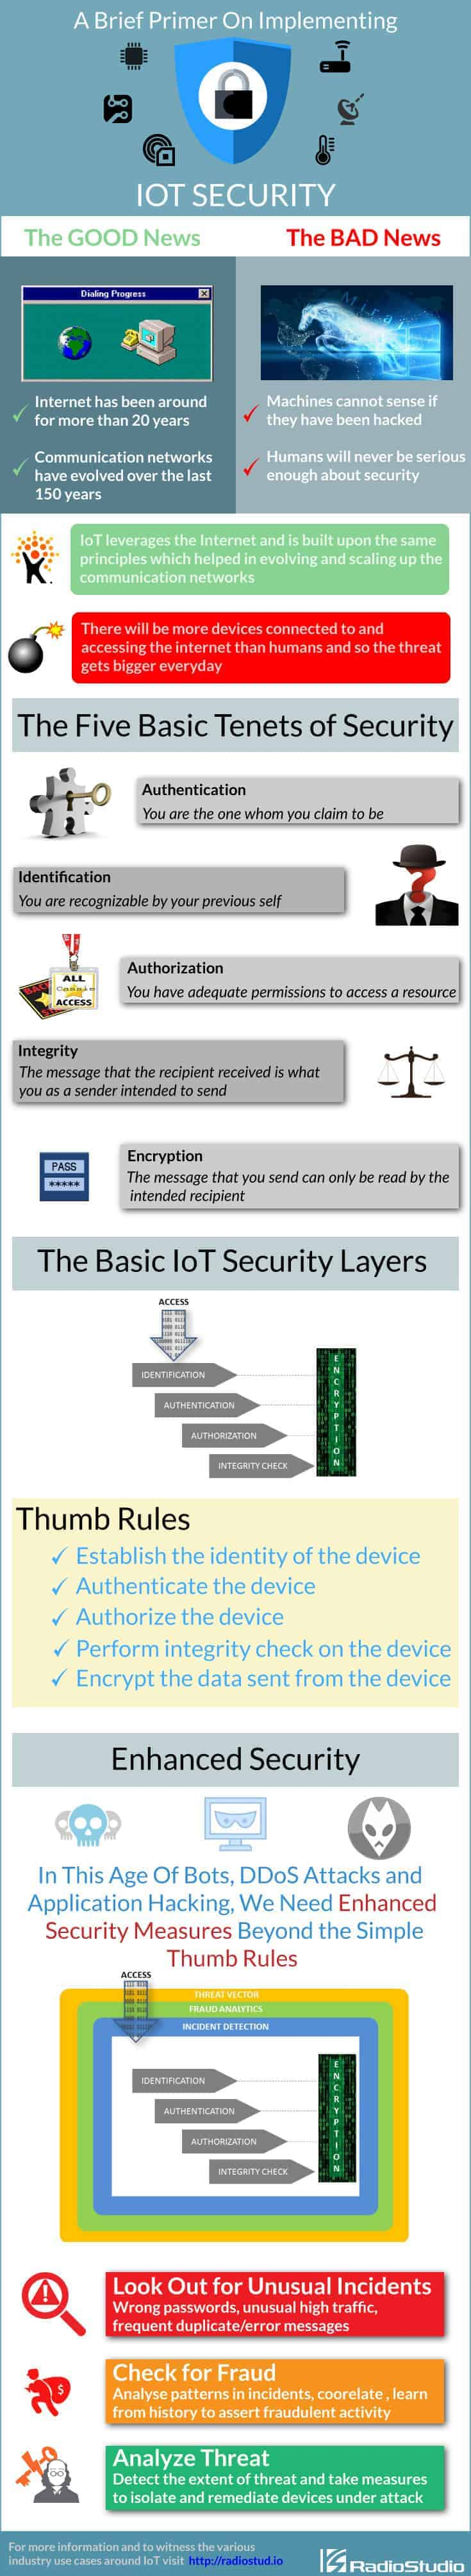 Brief Primer on Implementing IoT Security